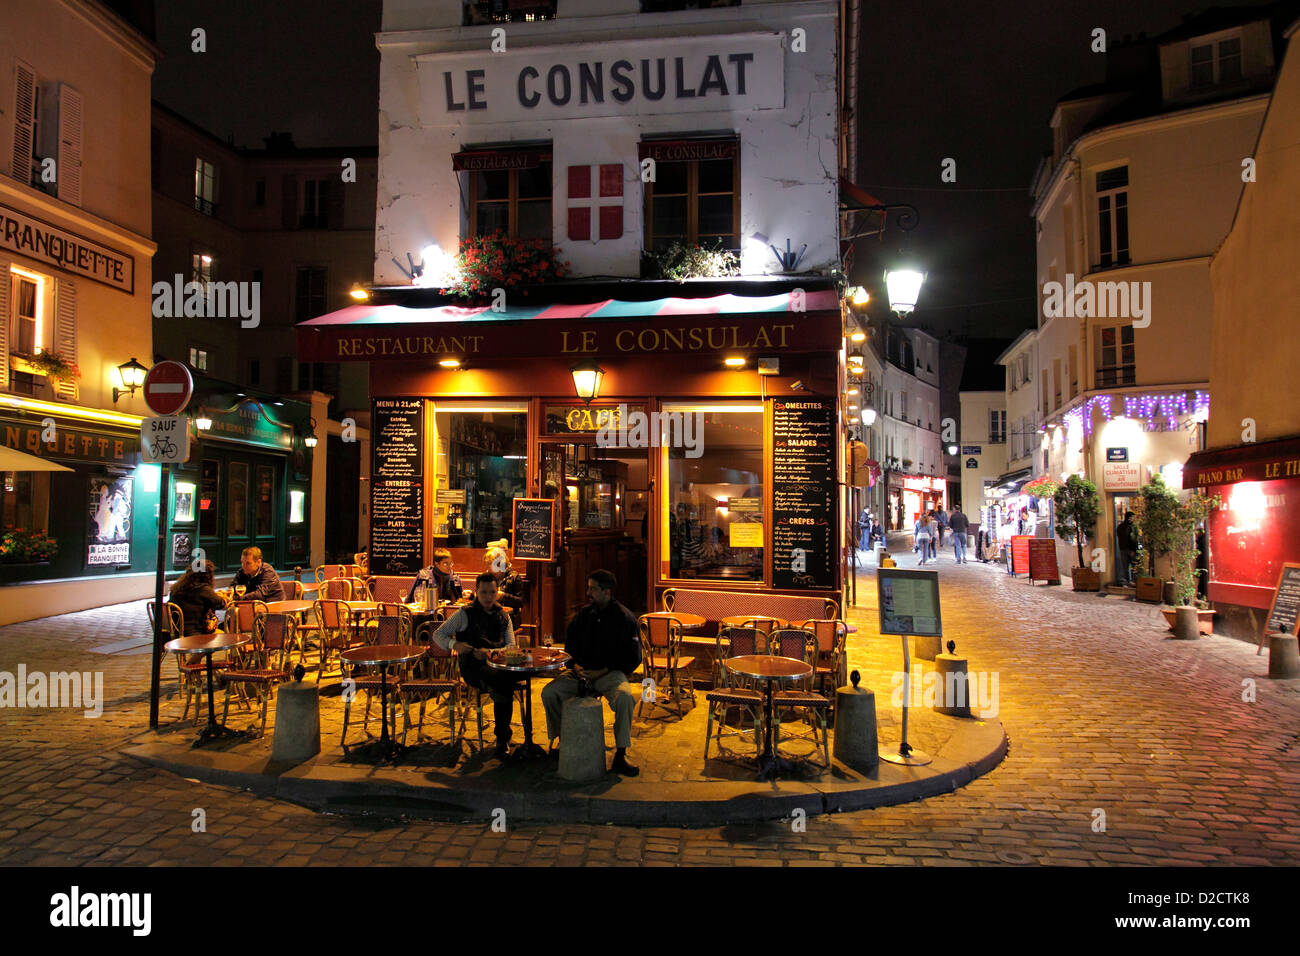 Restaurant and caf le consulat in montmartre at night for Restaurant miroir montmartre